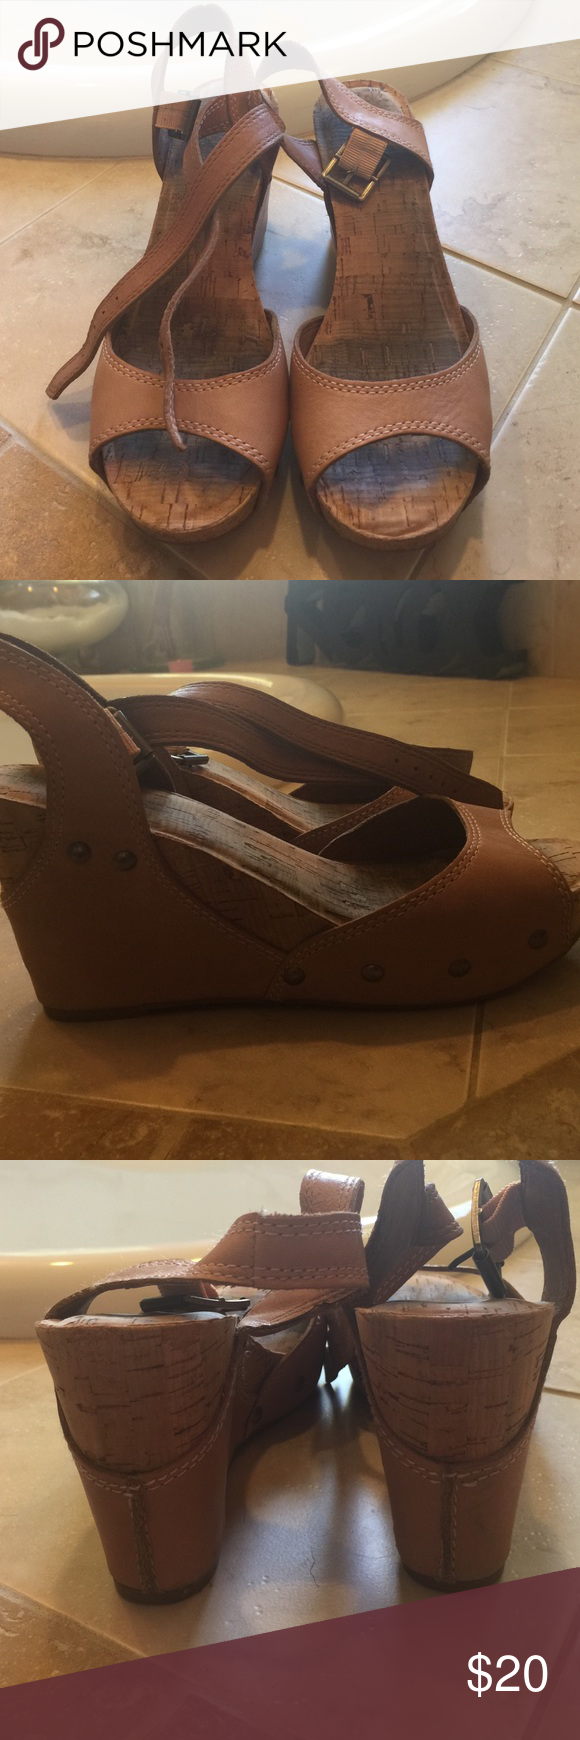 """Tan wedges Tan wedges with cork footbed and heel. 4"""" heel with 1"""" platform. Embellished with antiques bronzed hardware. Lucky brand Lucky Brand Shoes Wedges"""